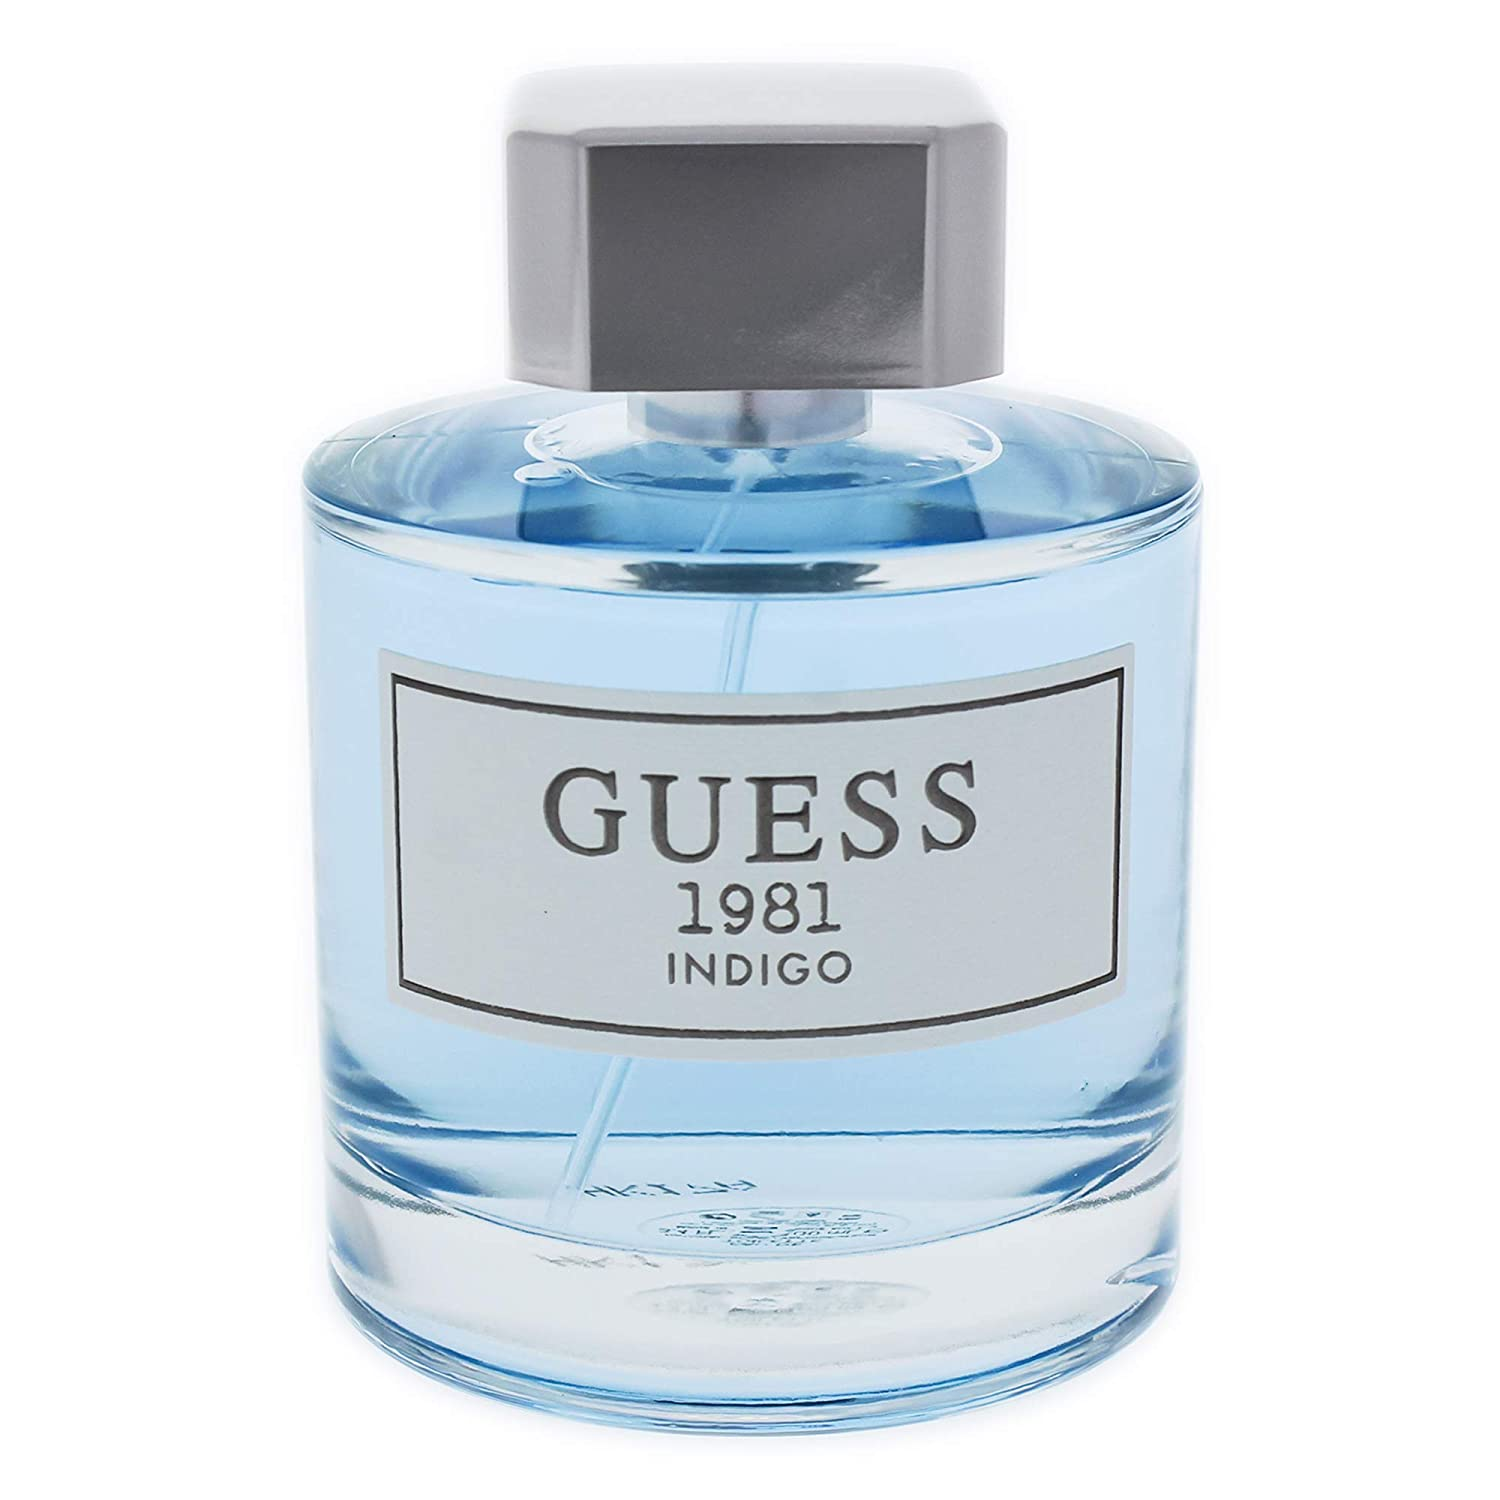 Guess 1981 Indigo For Women EDT Spray 50ml